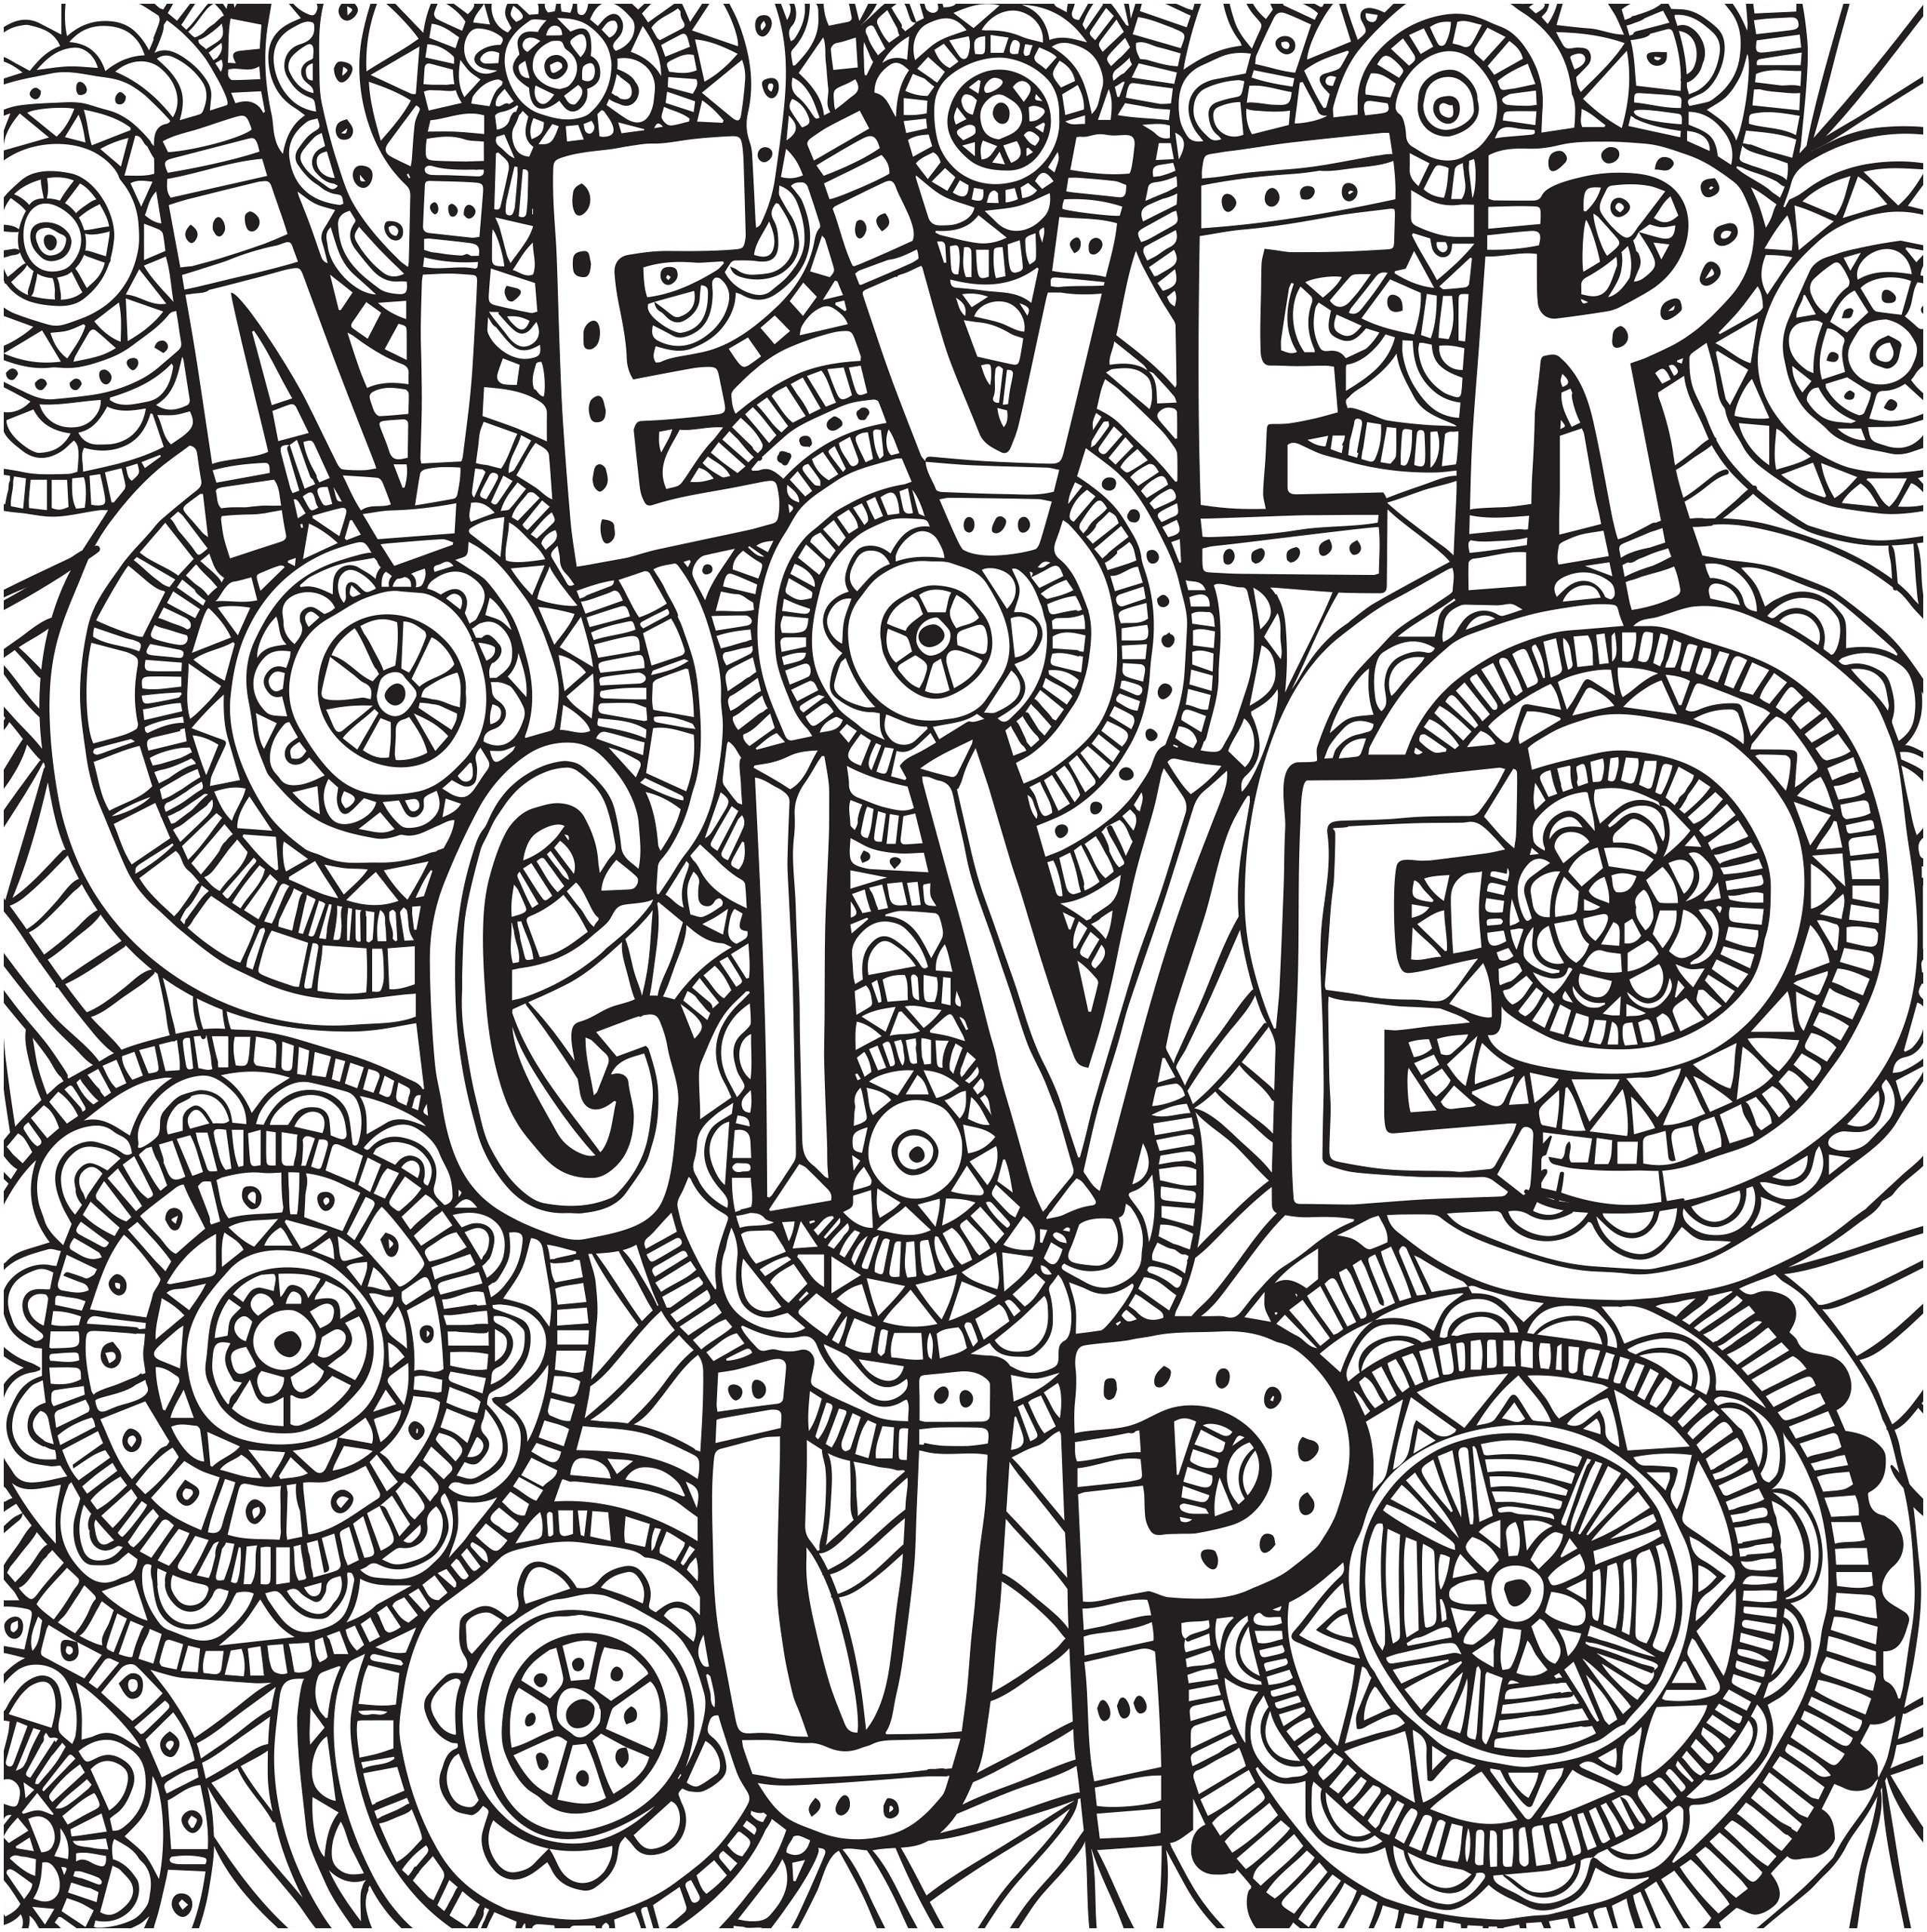 Coloring Ideas : Free Printable Quotes Coloring Pages Best Fresh - Free Printable Inspirational Coloring Pages